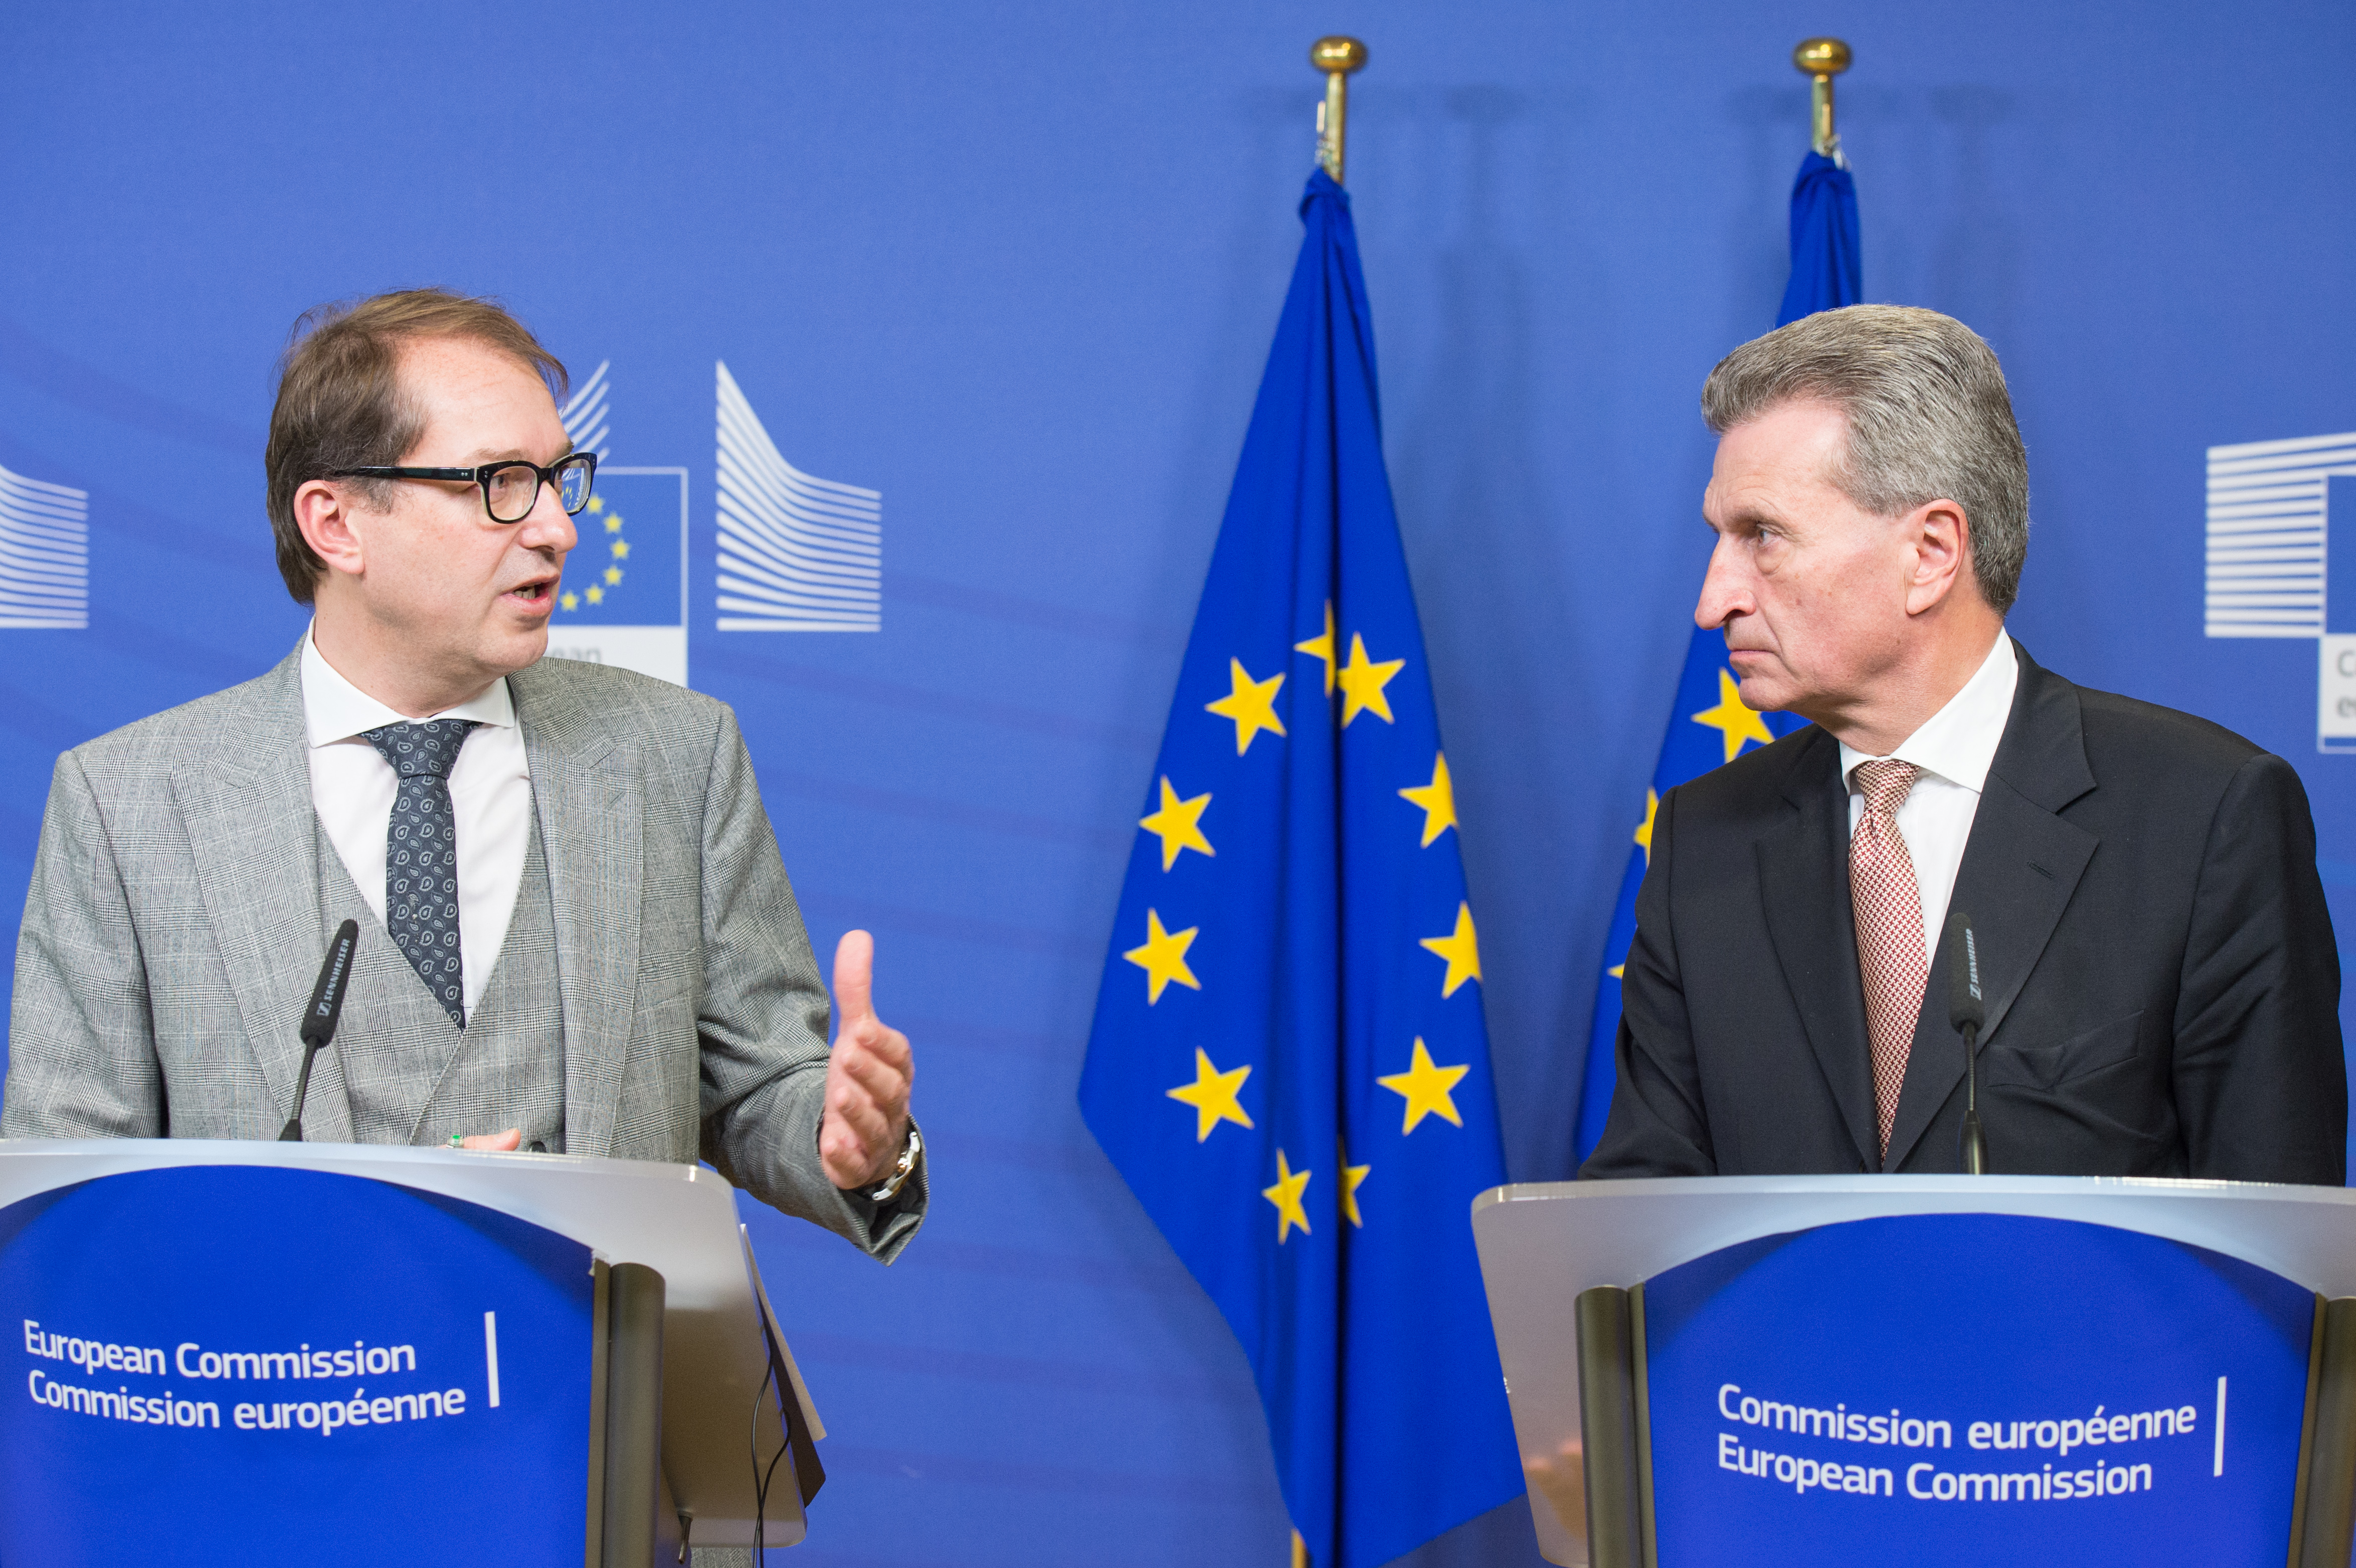 German Transport Minister Alexander Dobrindt and EU Digital Commissioner Günther Oettinger